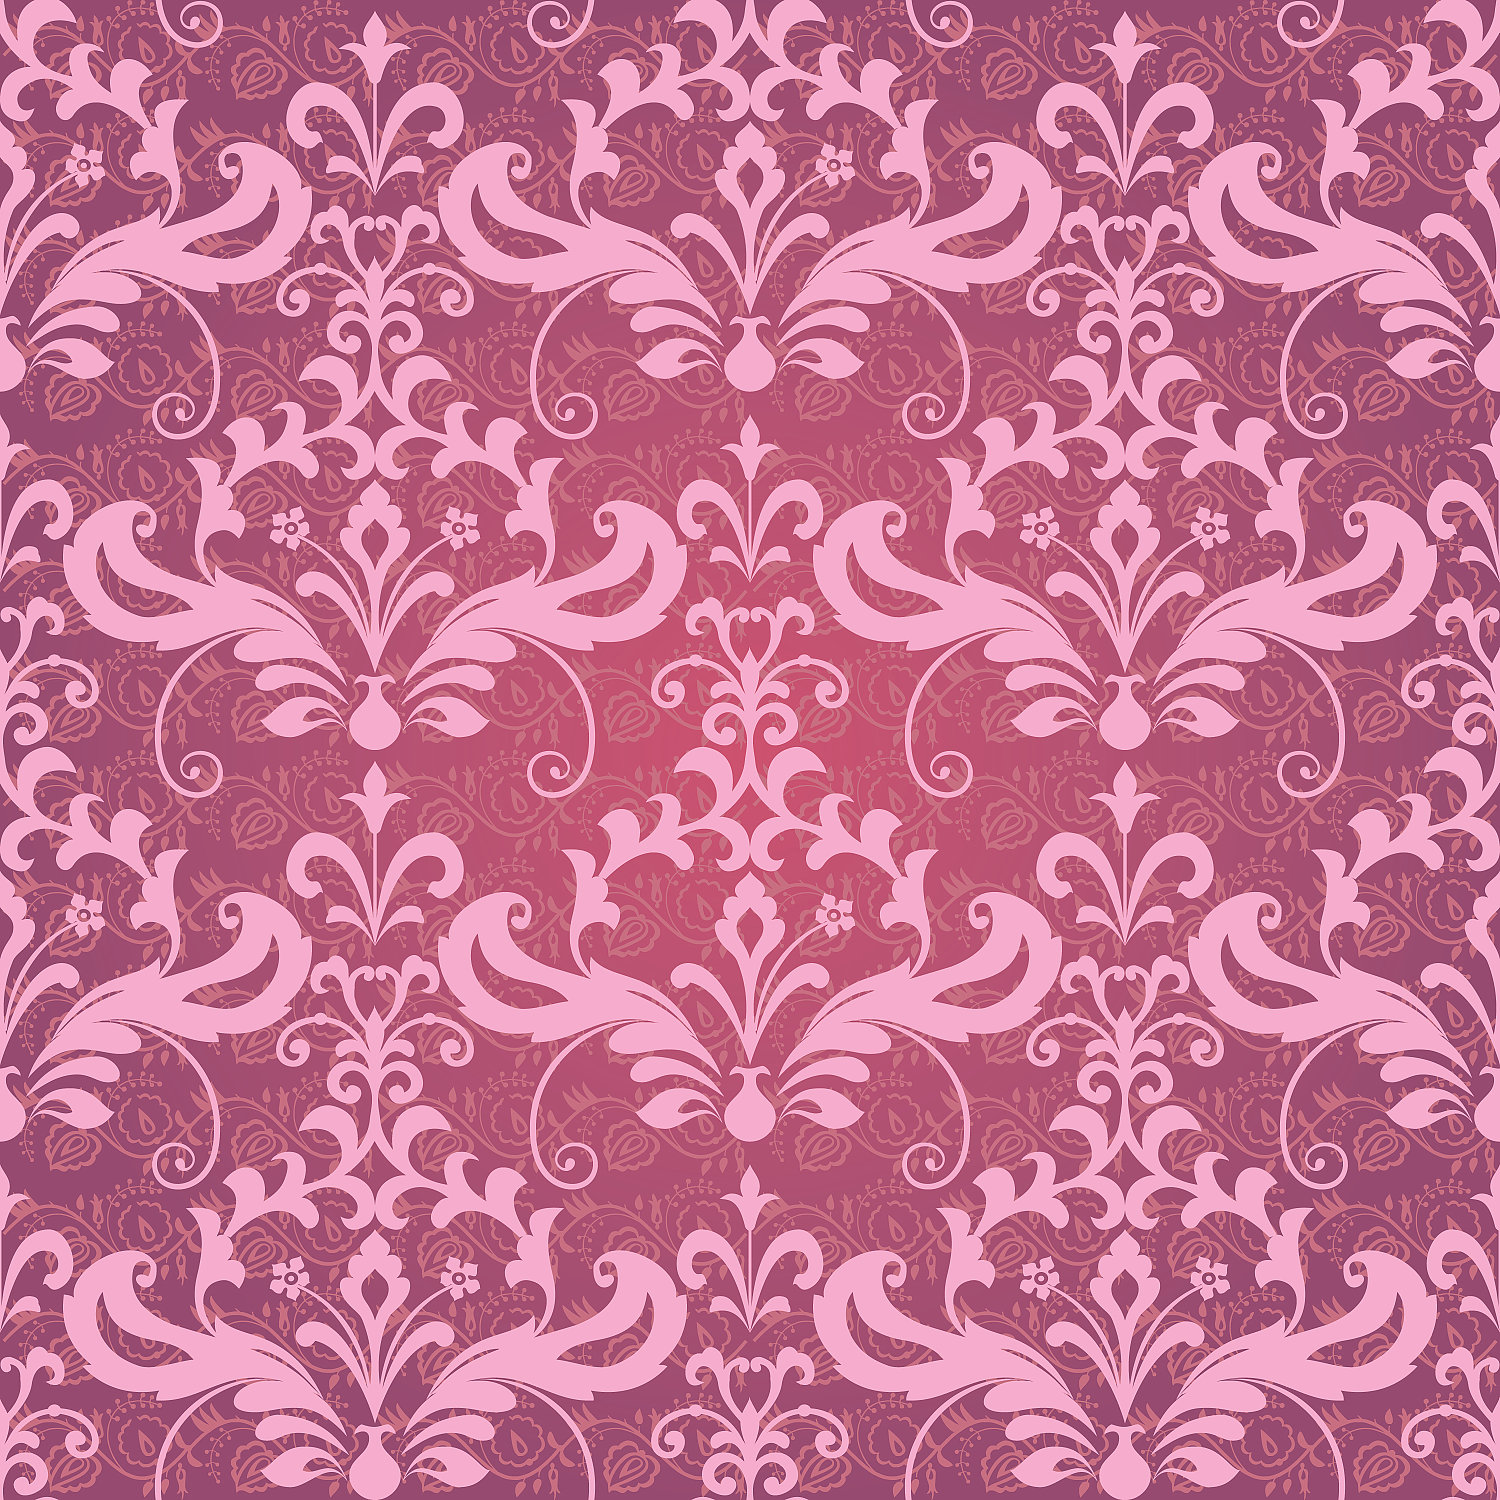 httpquotekocombackdrops damask wallpaper baby pink and whitehtml 1500x1500